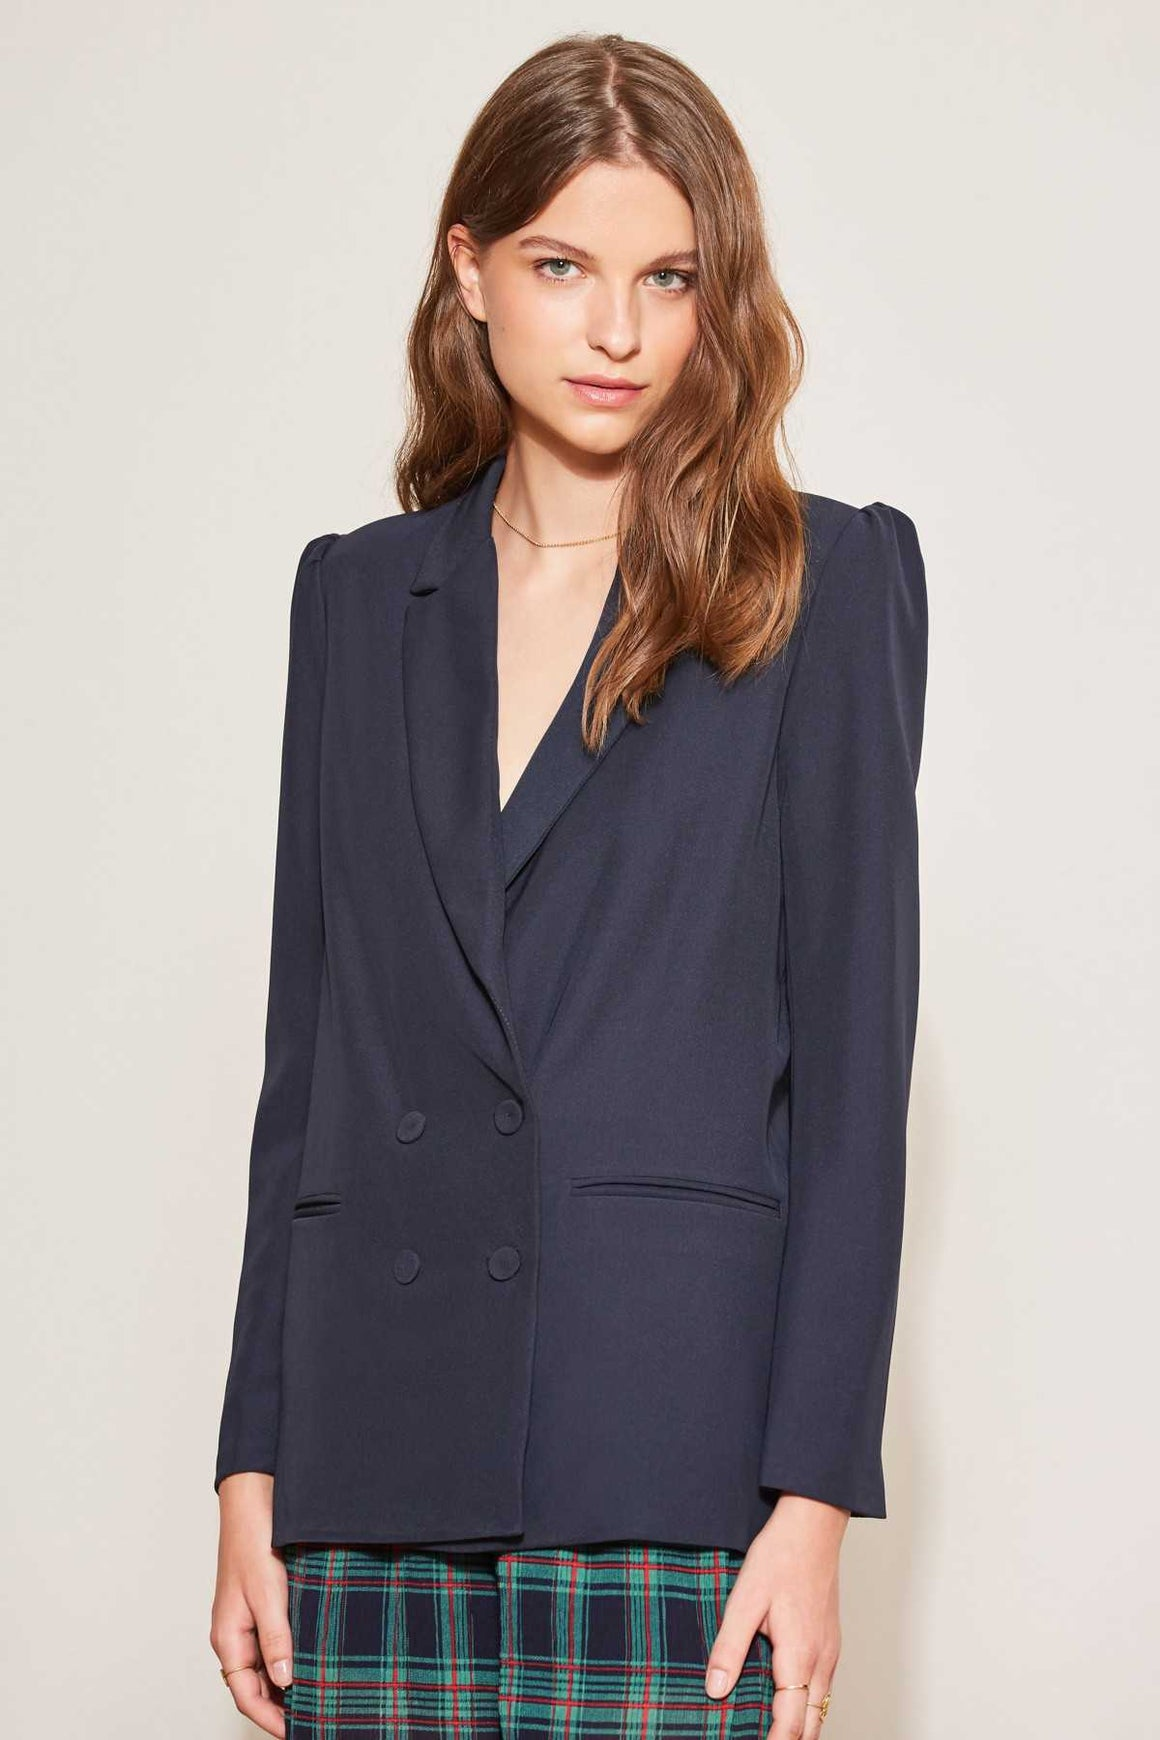 The Fifth Label Curveball Blazer in Navy | Shop online at IKON